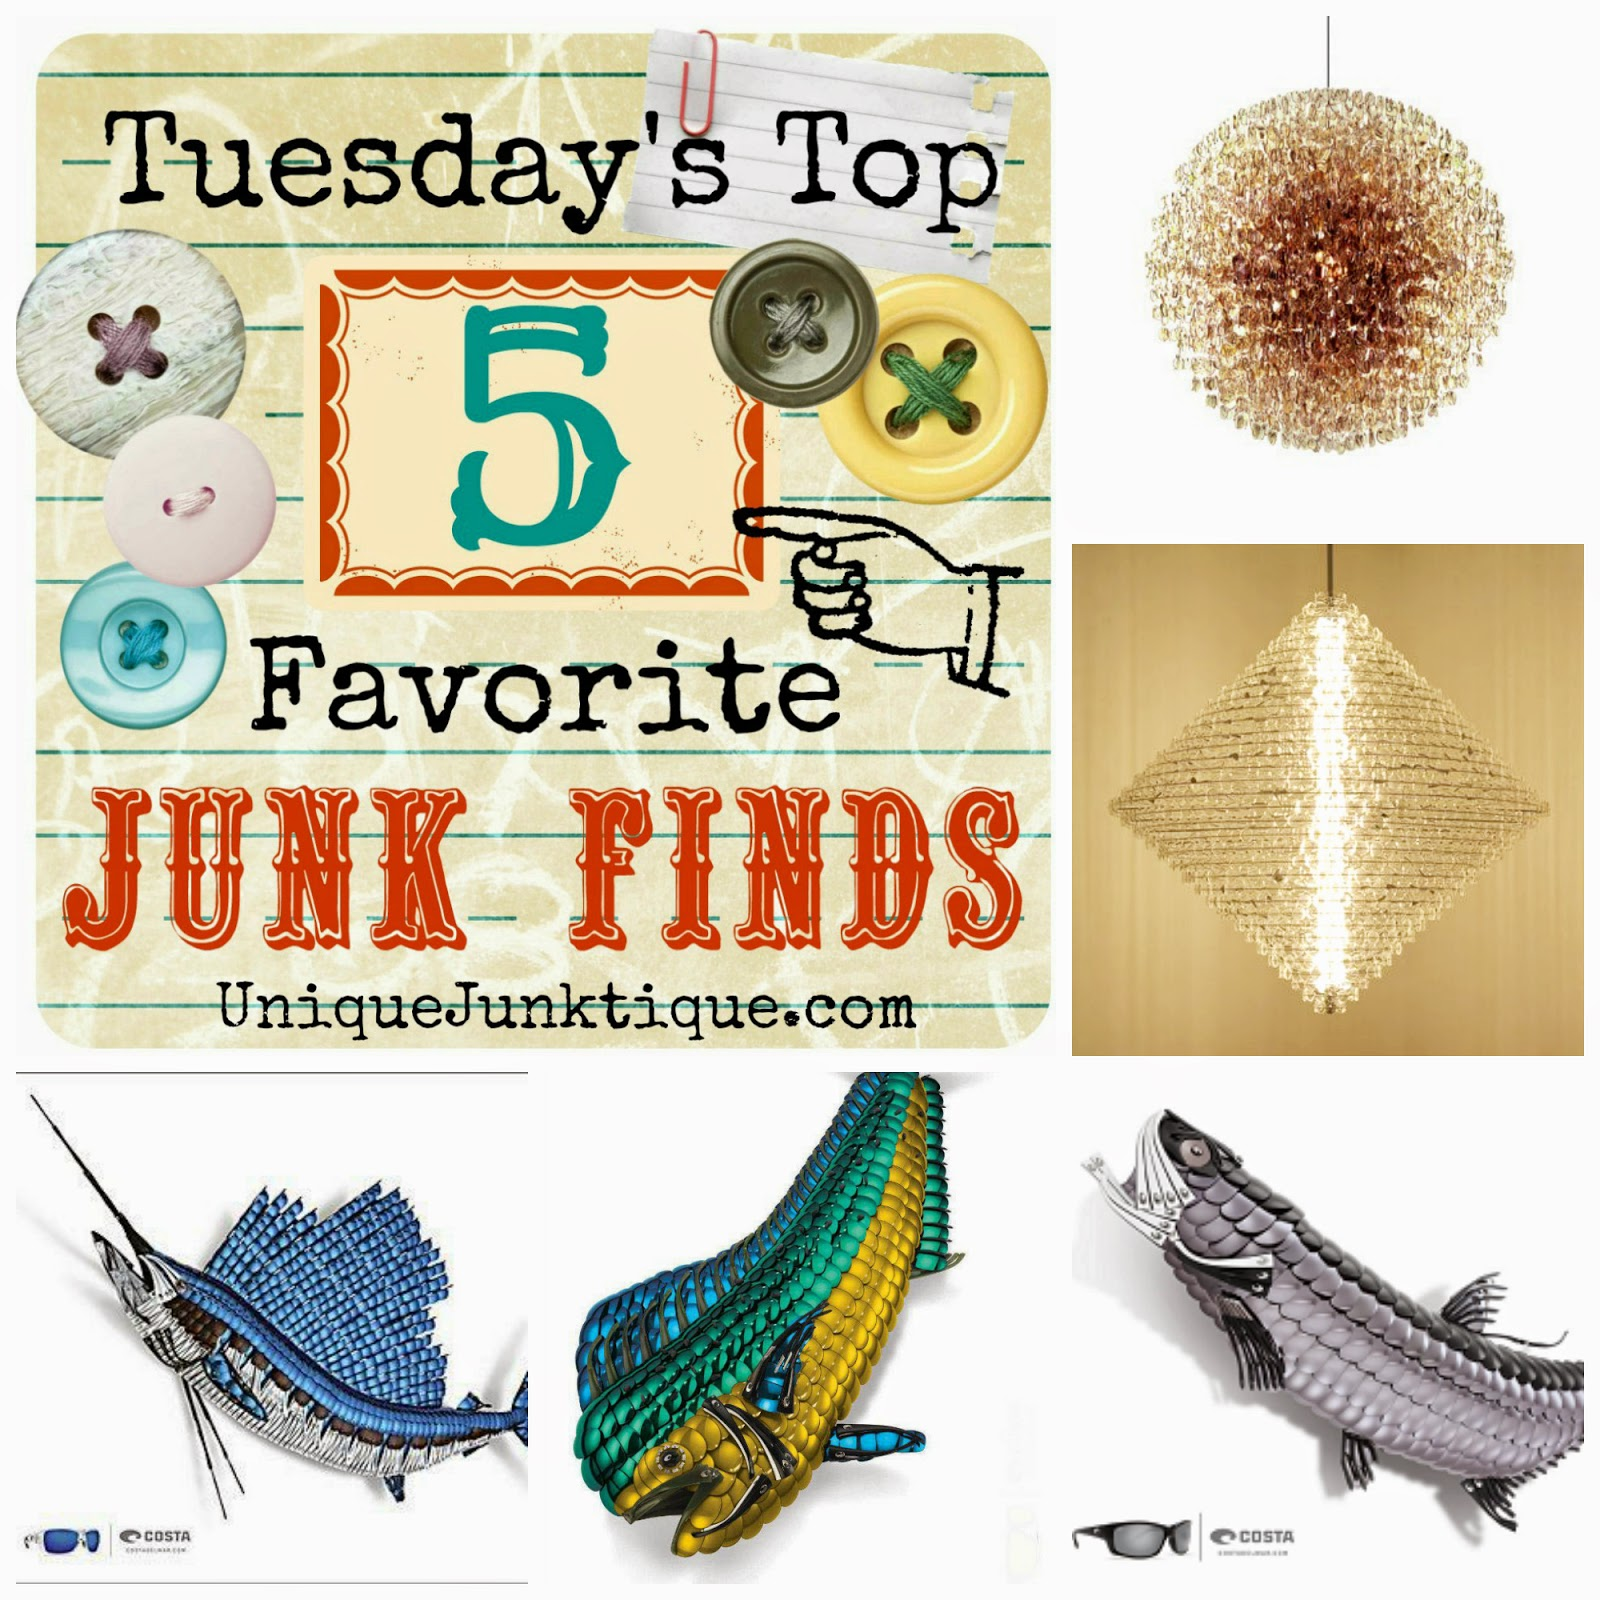 Tuesdays Top Five Favorite Junk Finds #27 featuring Optical Lens Art Sculptures